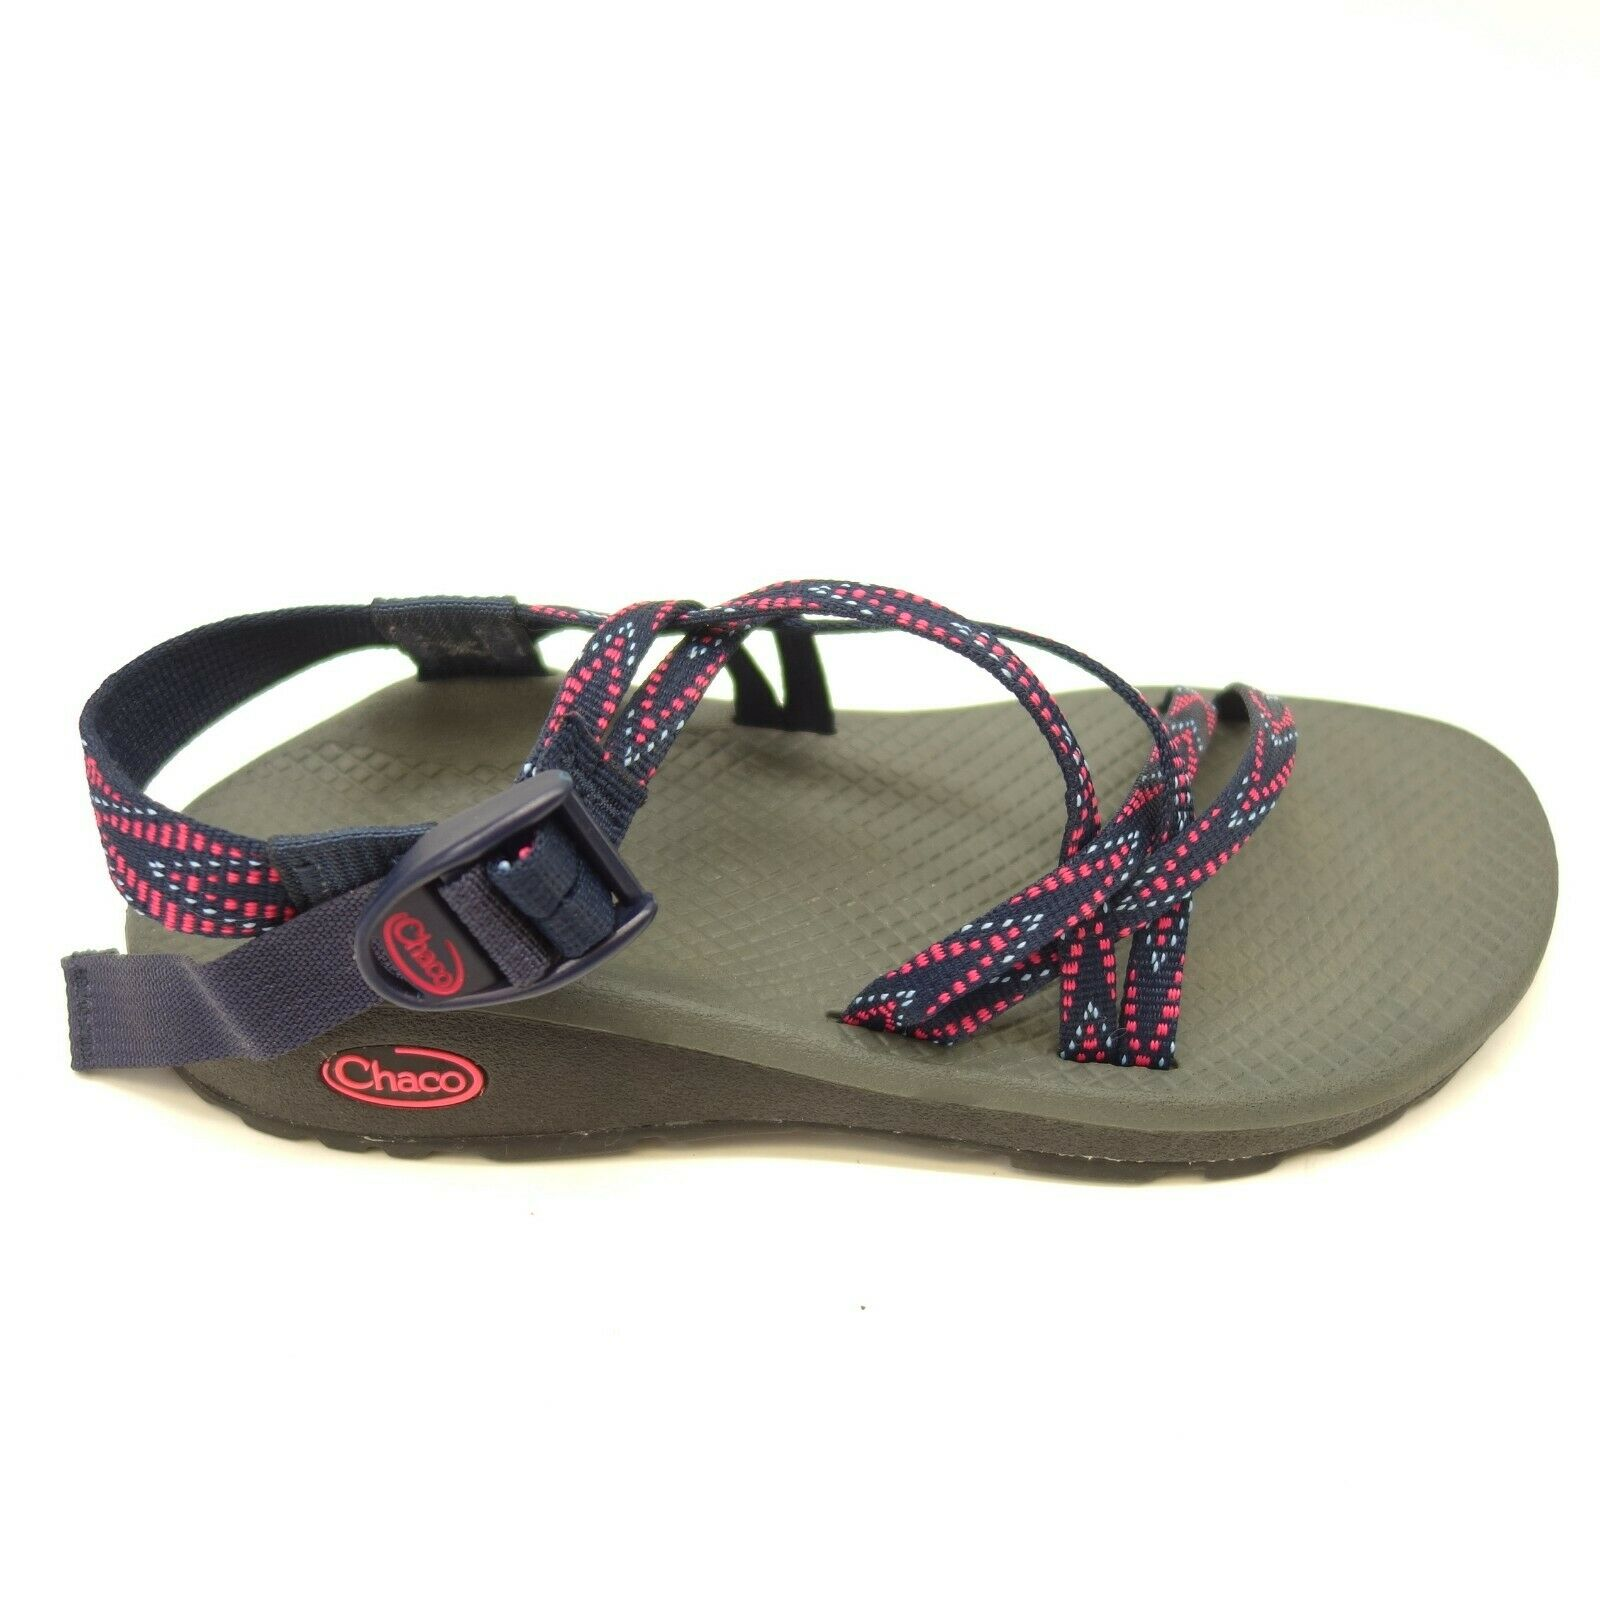 Chaco Z Cloud Us 7 EU 38 Sport Free Navy Pink Athletic Outdoor Womens shoes